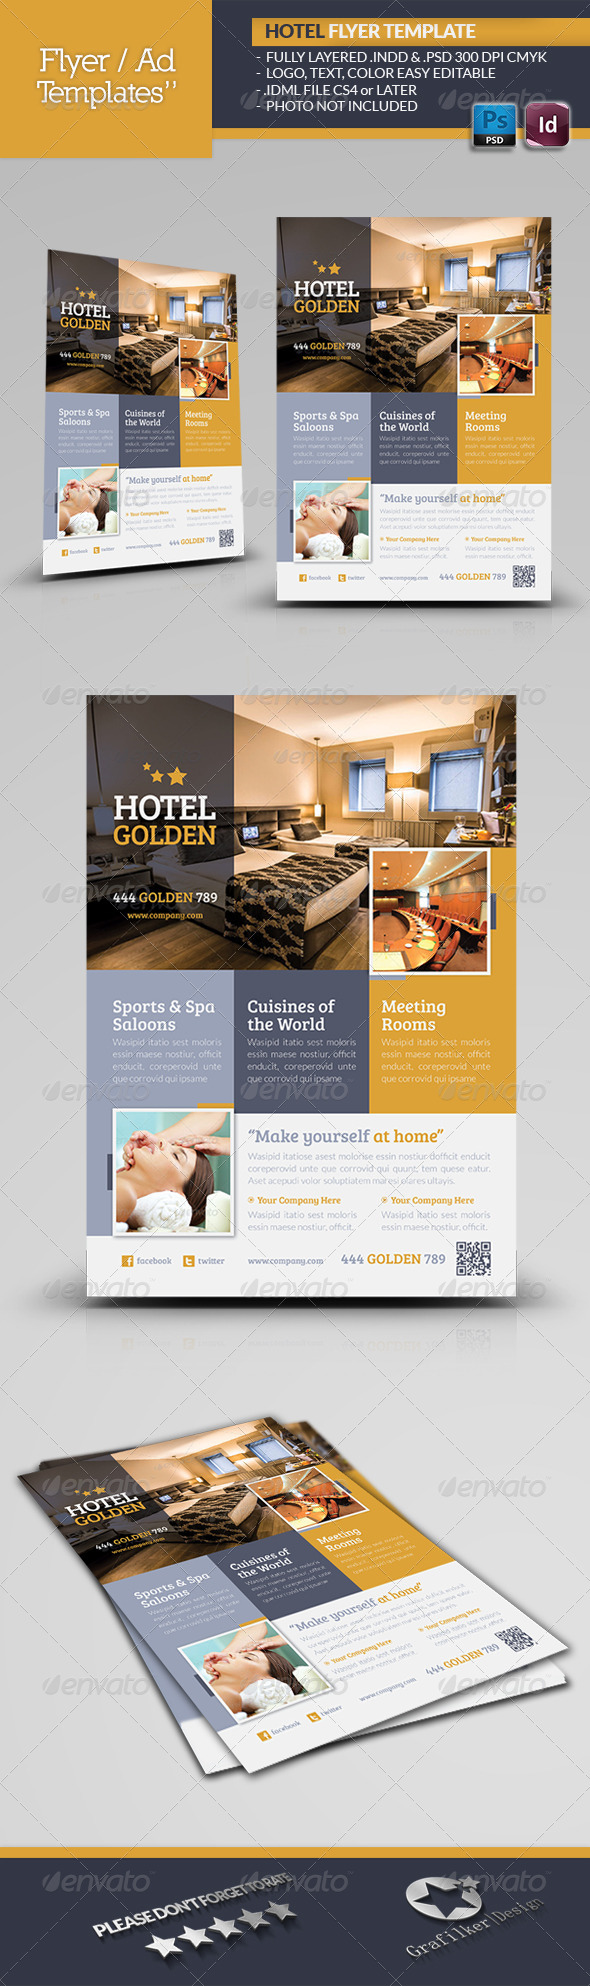 GraphicRiver Hotel Golden Flyer Template 4965721